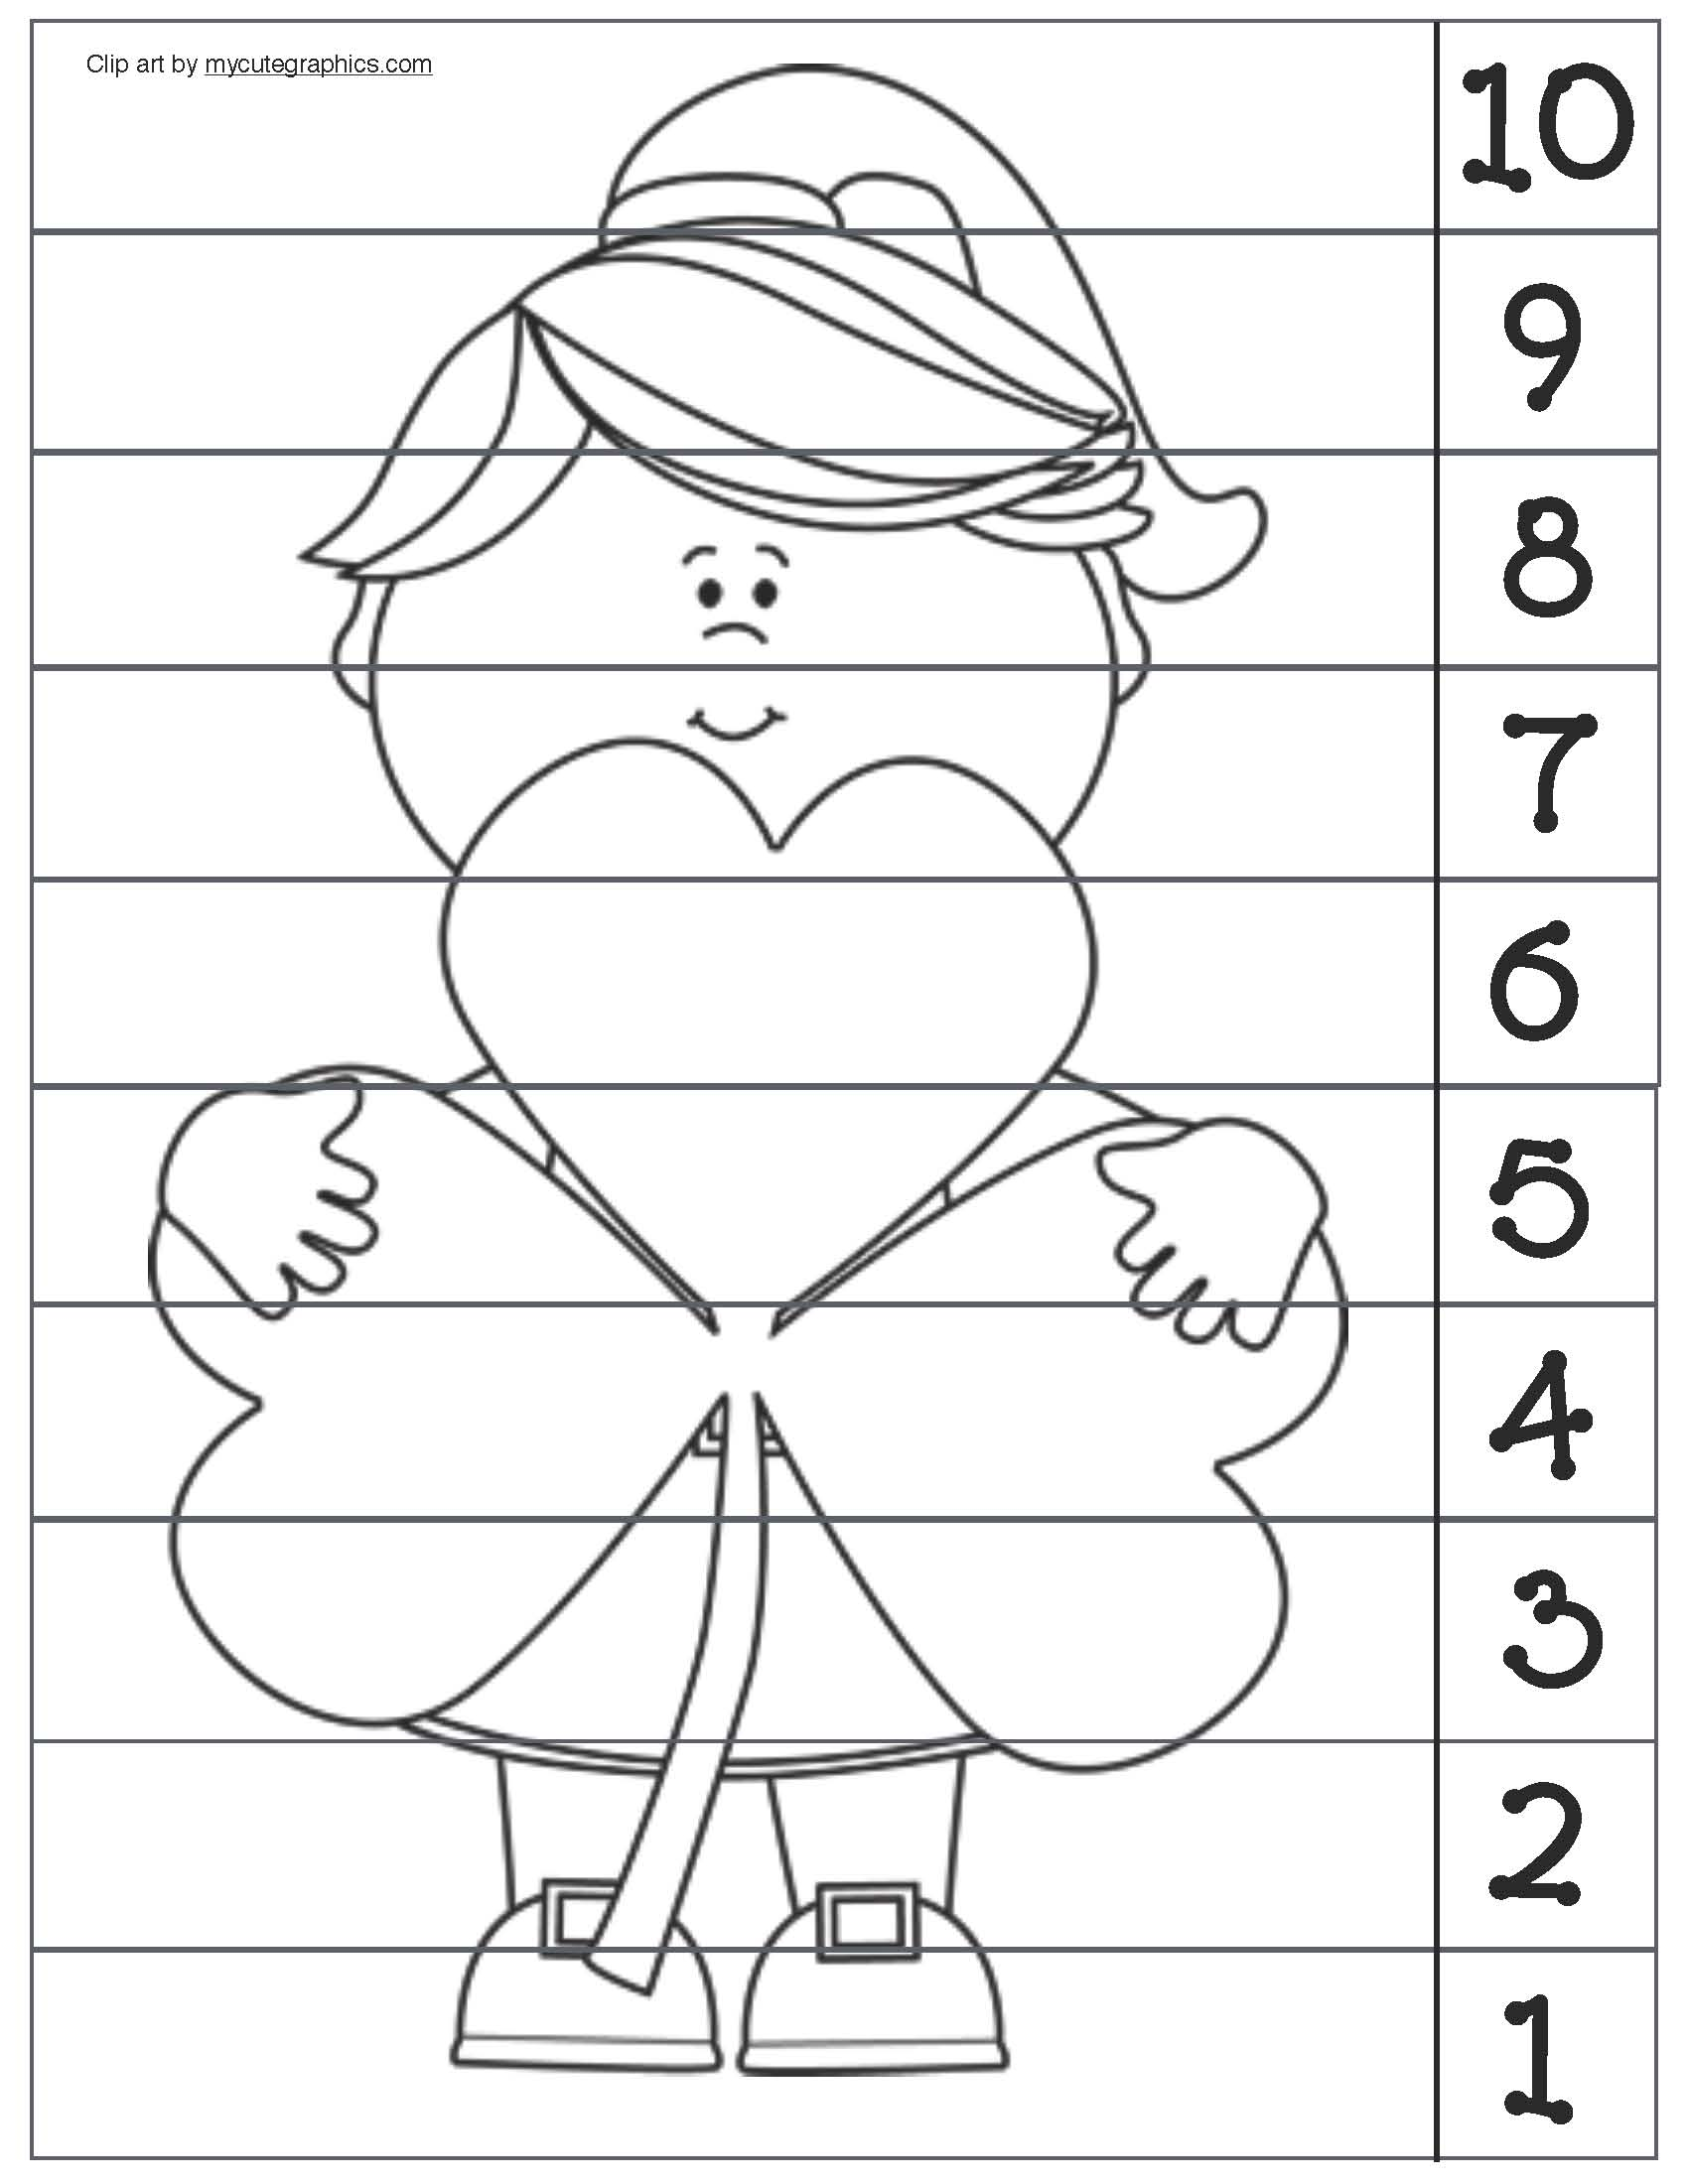 St. Patricks day activities, st pattys day activities, shamrock alphabet cards, st pats day activities, st patricks day word search, st patricks day word find, st patricks day games, shamrock activities, shamrock centers, shamrock 10 frames, st patricks day puzzles, daily 5 for march, vocabulary building activities, how many words can you make out of leprechaun, how many words can you make out of shamrock, skip counting activities, counting backwards activities, skip counting by 10's, 10 frames templates, shamrock 10 frames, ten frames activities, 10 frames activities, common core st patricks day,